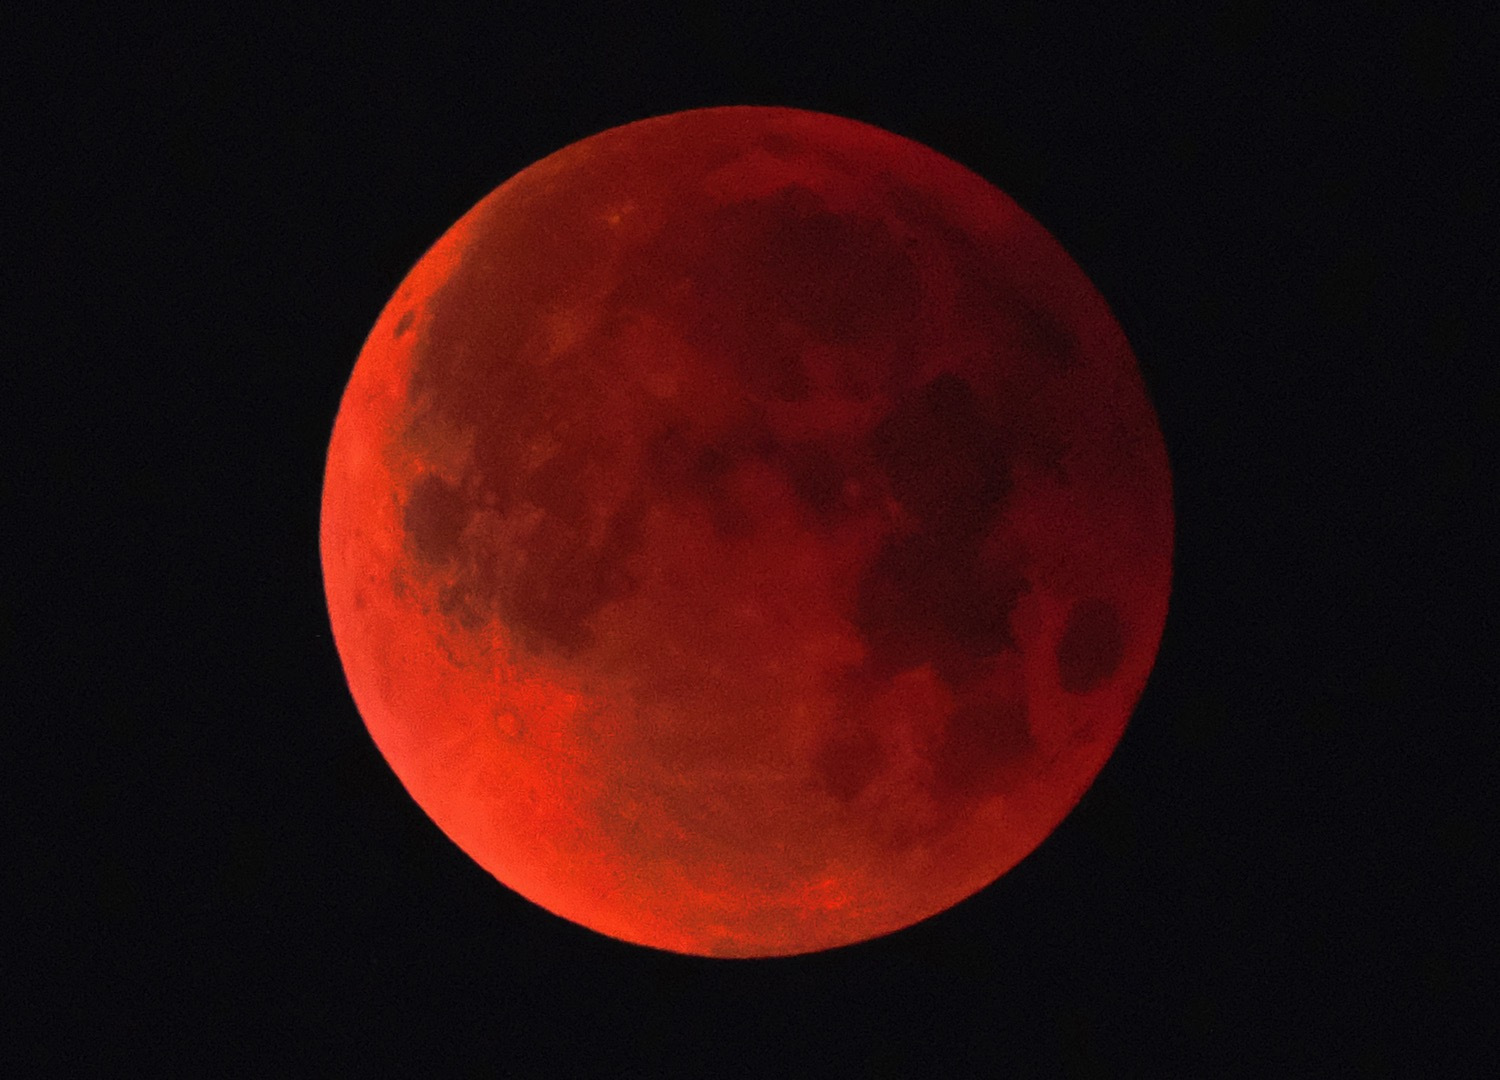 Eclipse clipart blue red moon. Check out these gorgeous